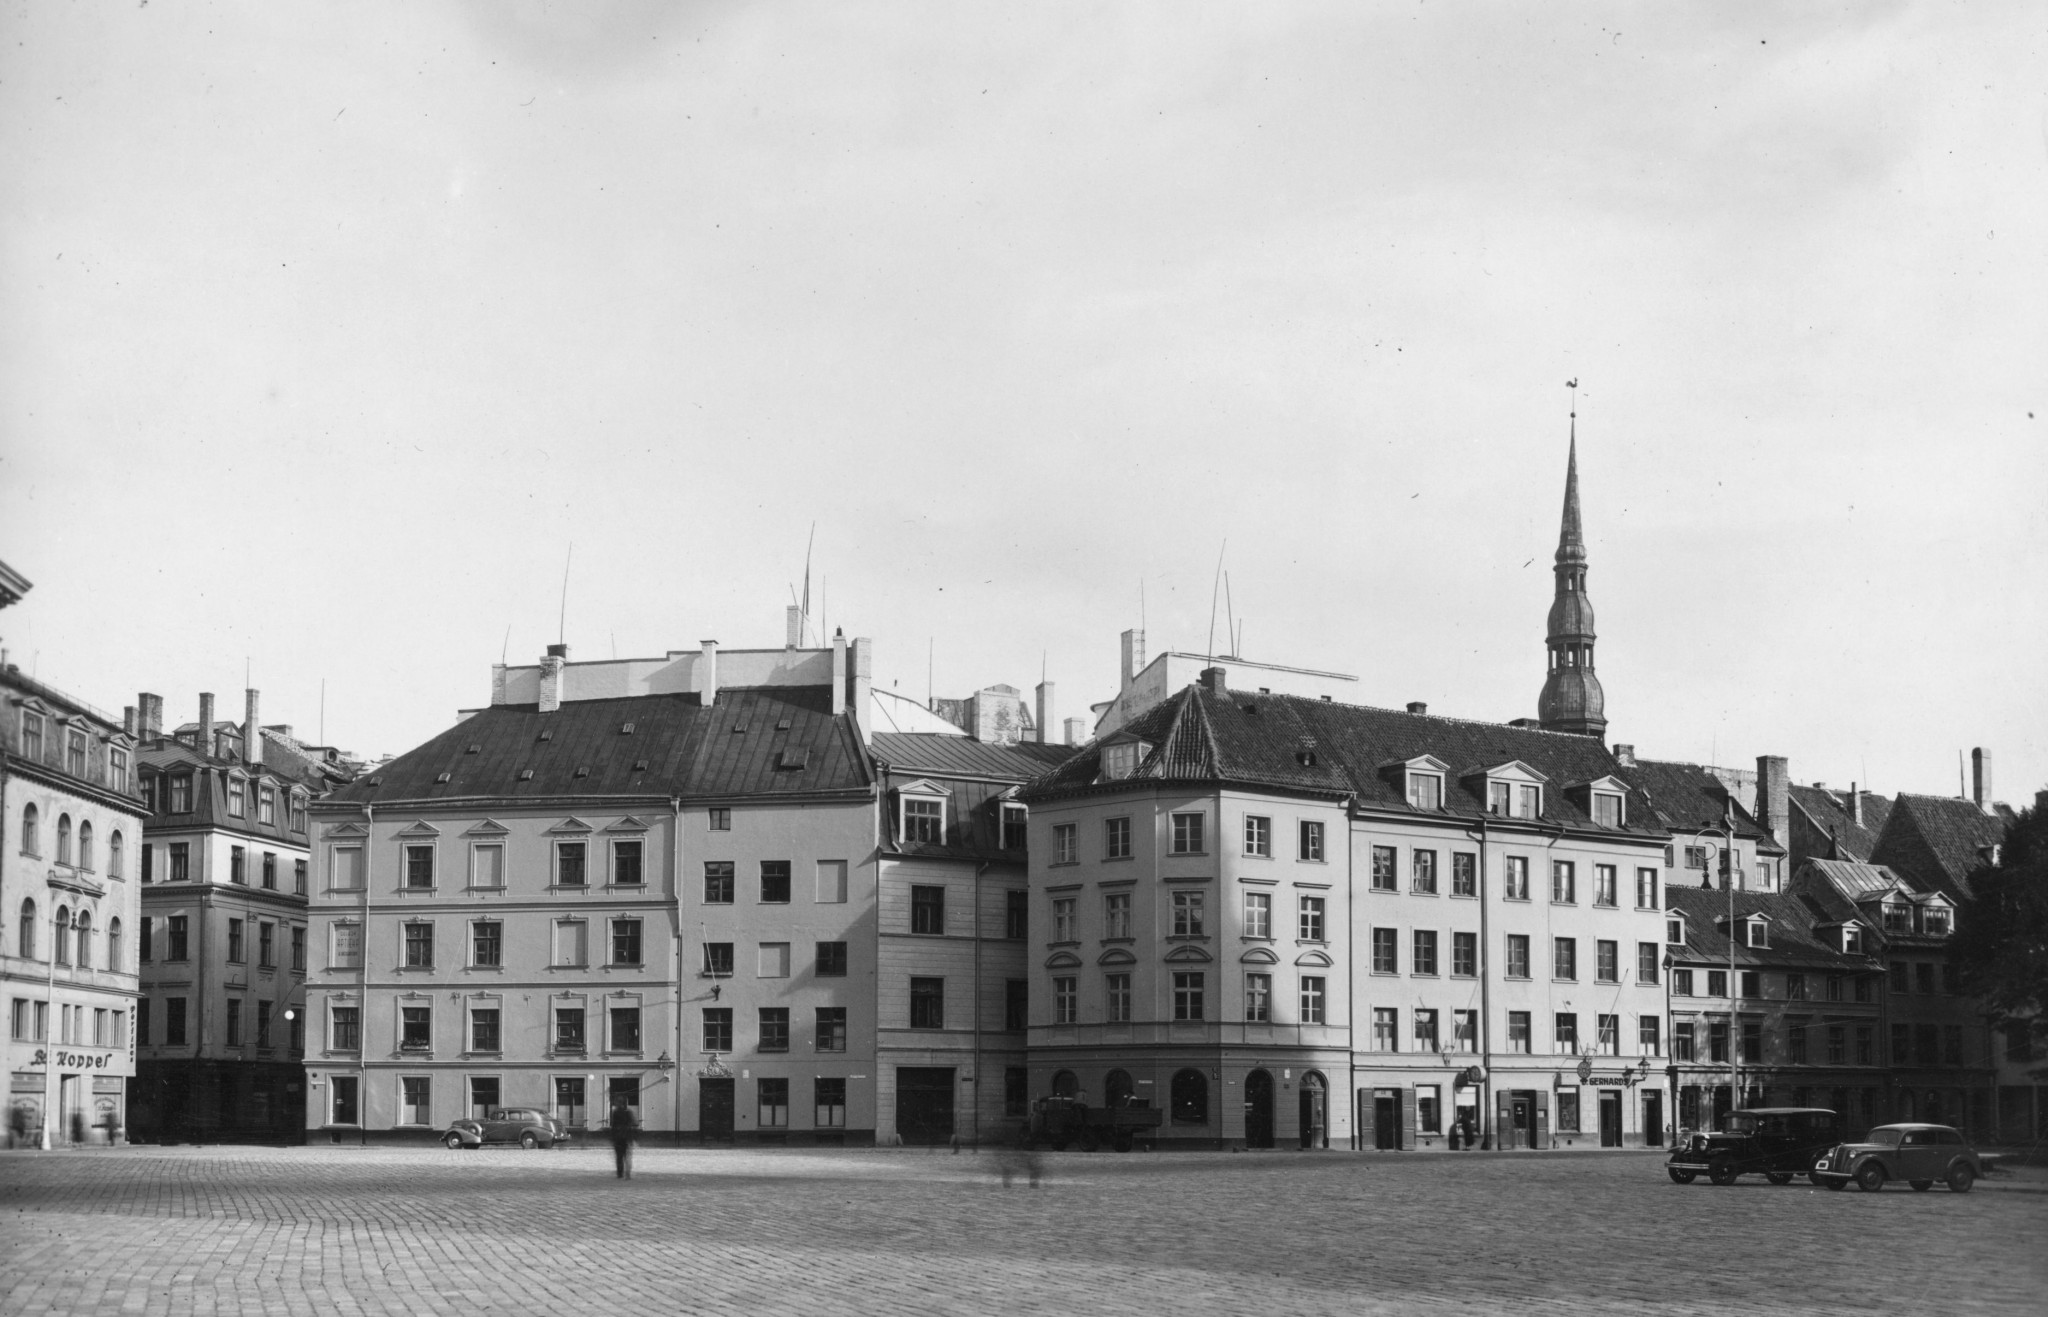 Riga, capital of Latvia. © Ed Kraucs/Hulton Archive/Getty Images